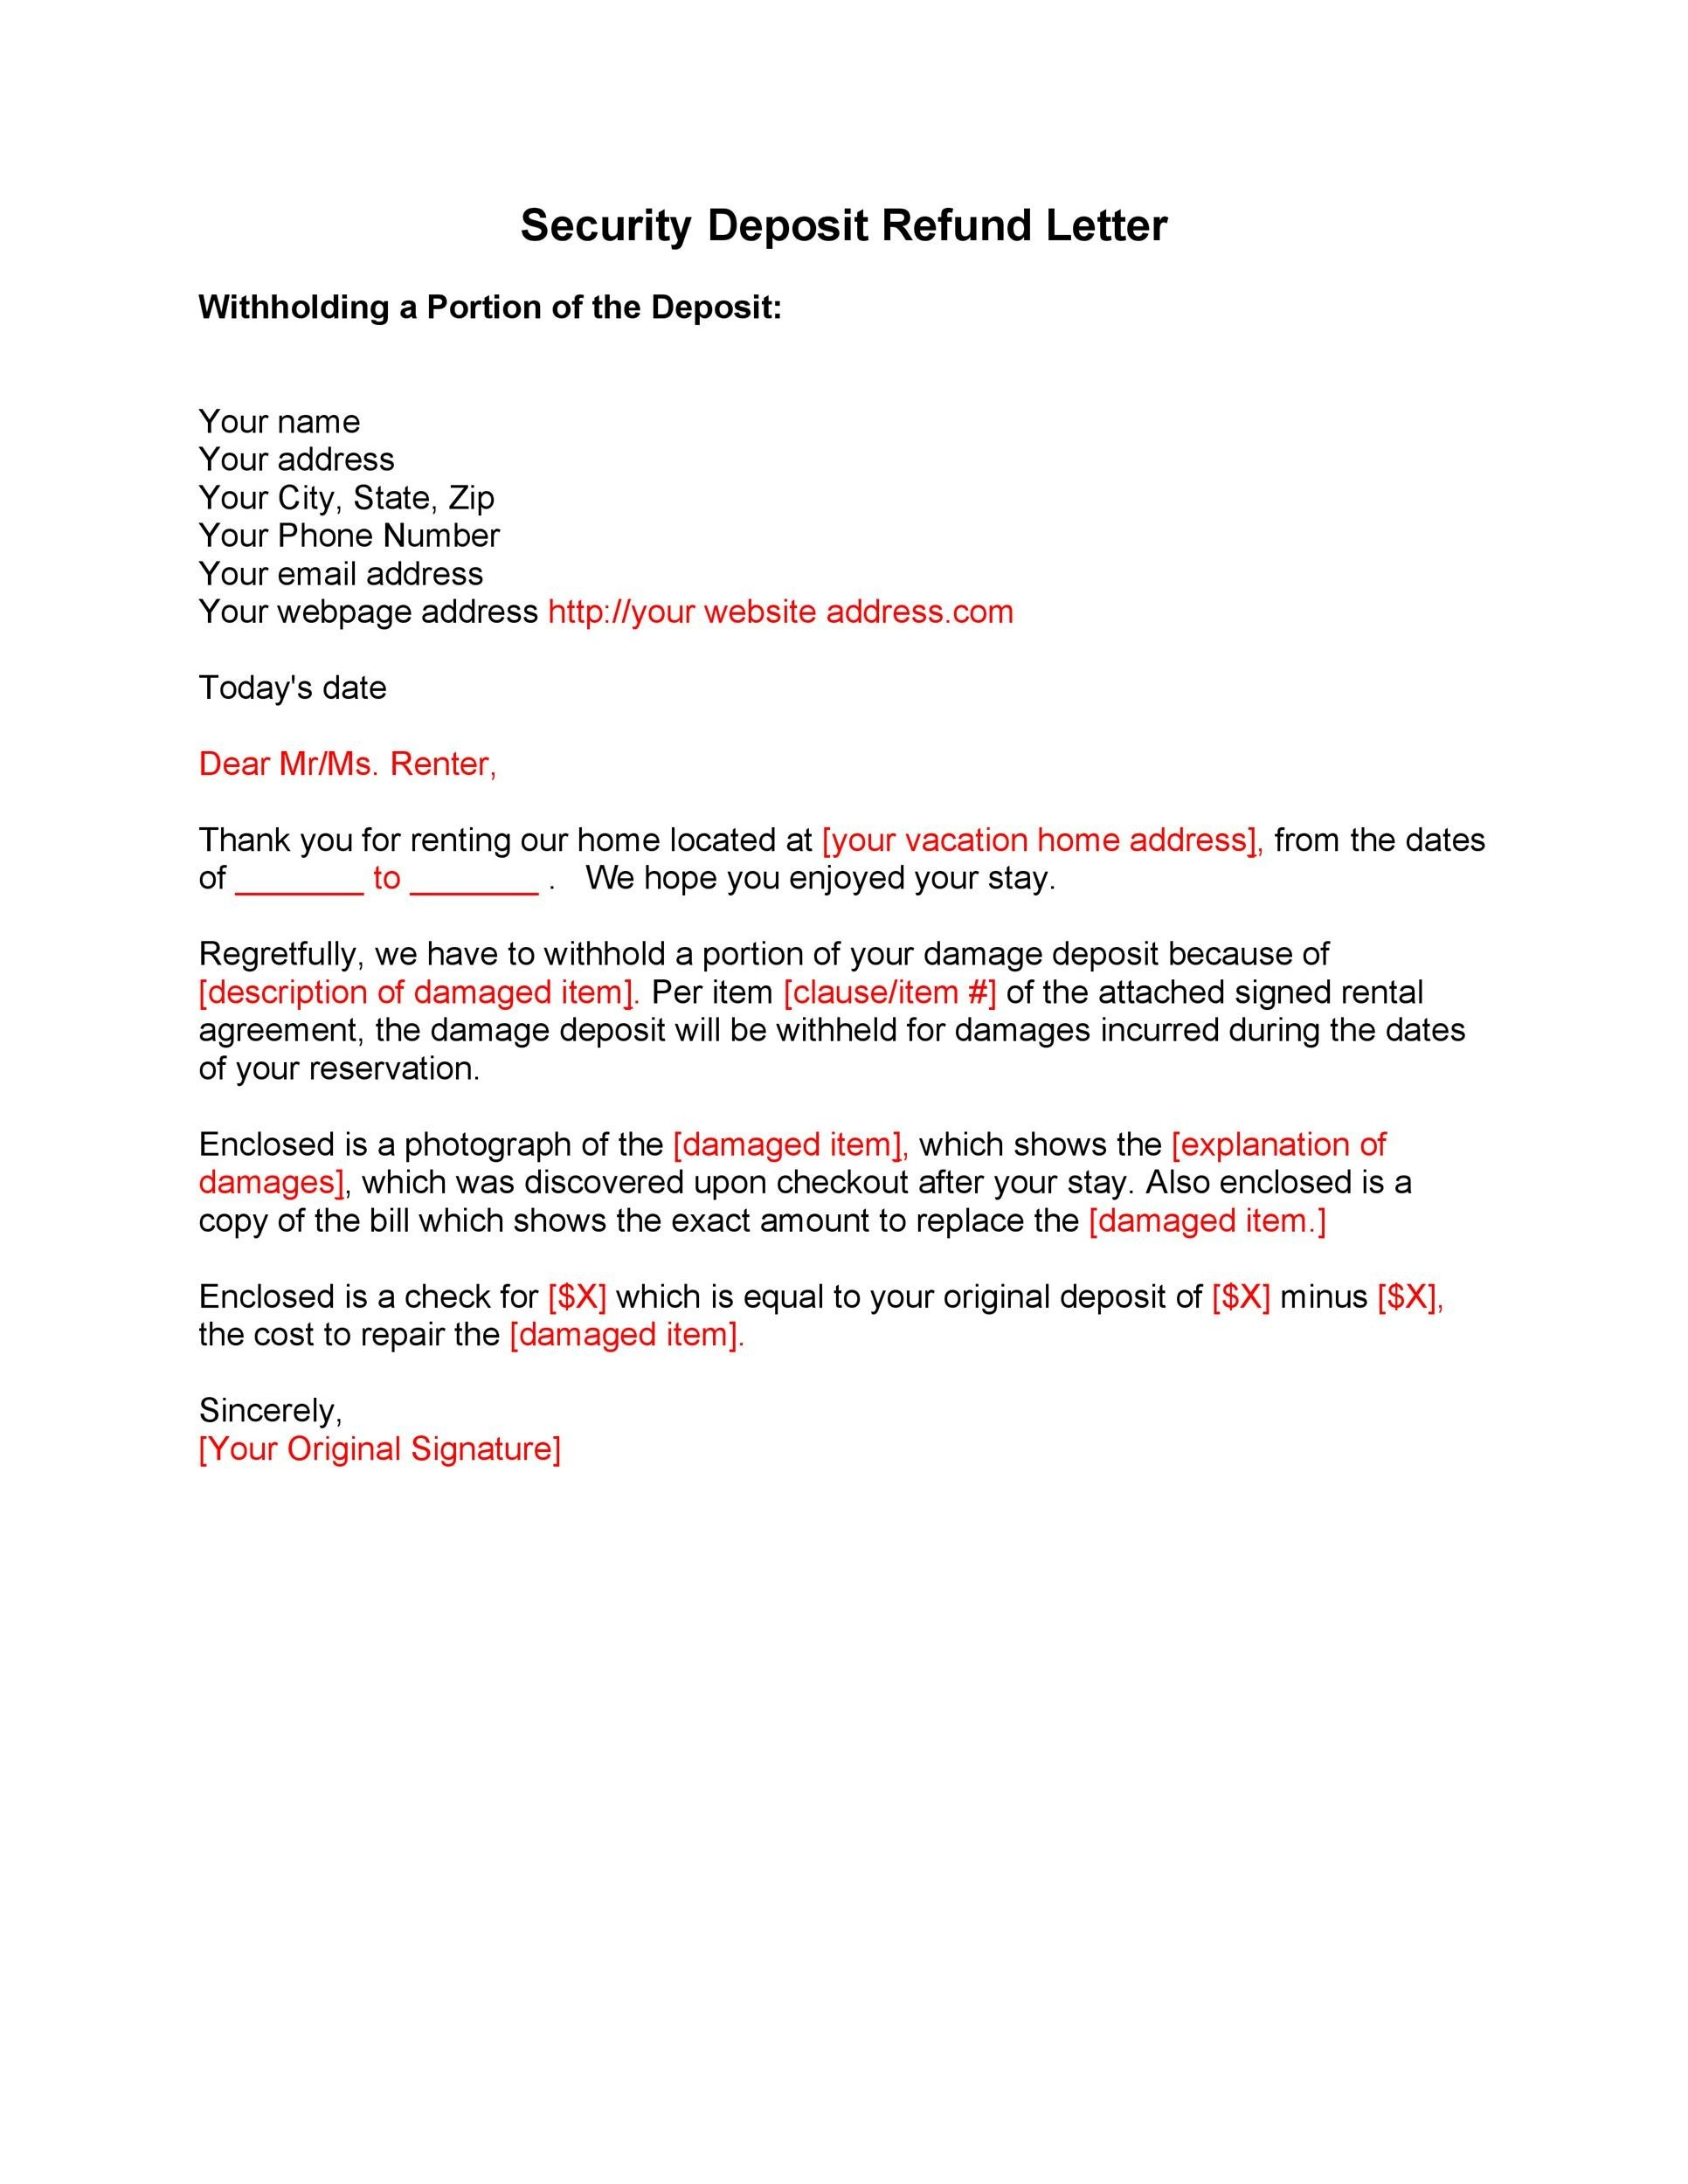 Free security deposit return letter 03